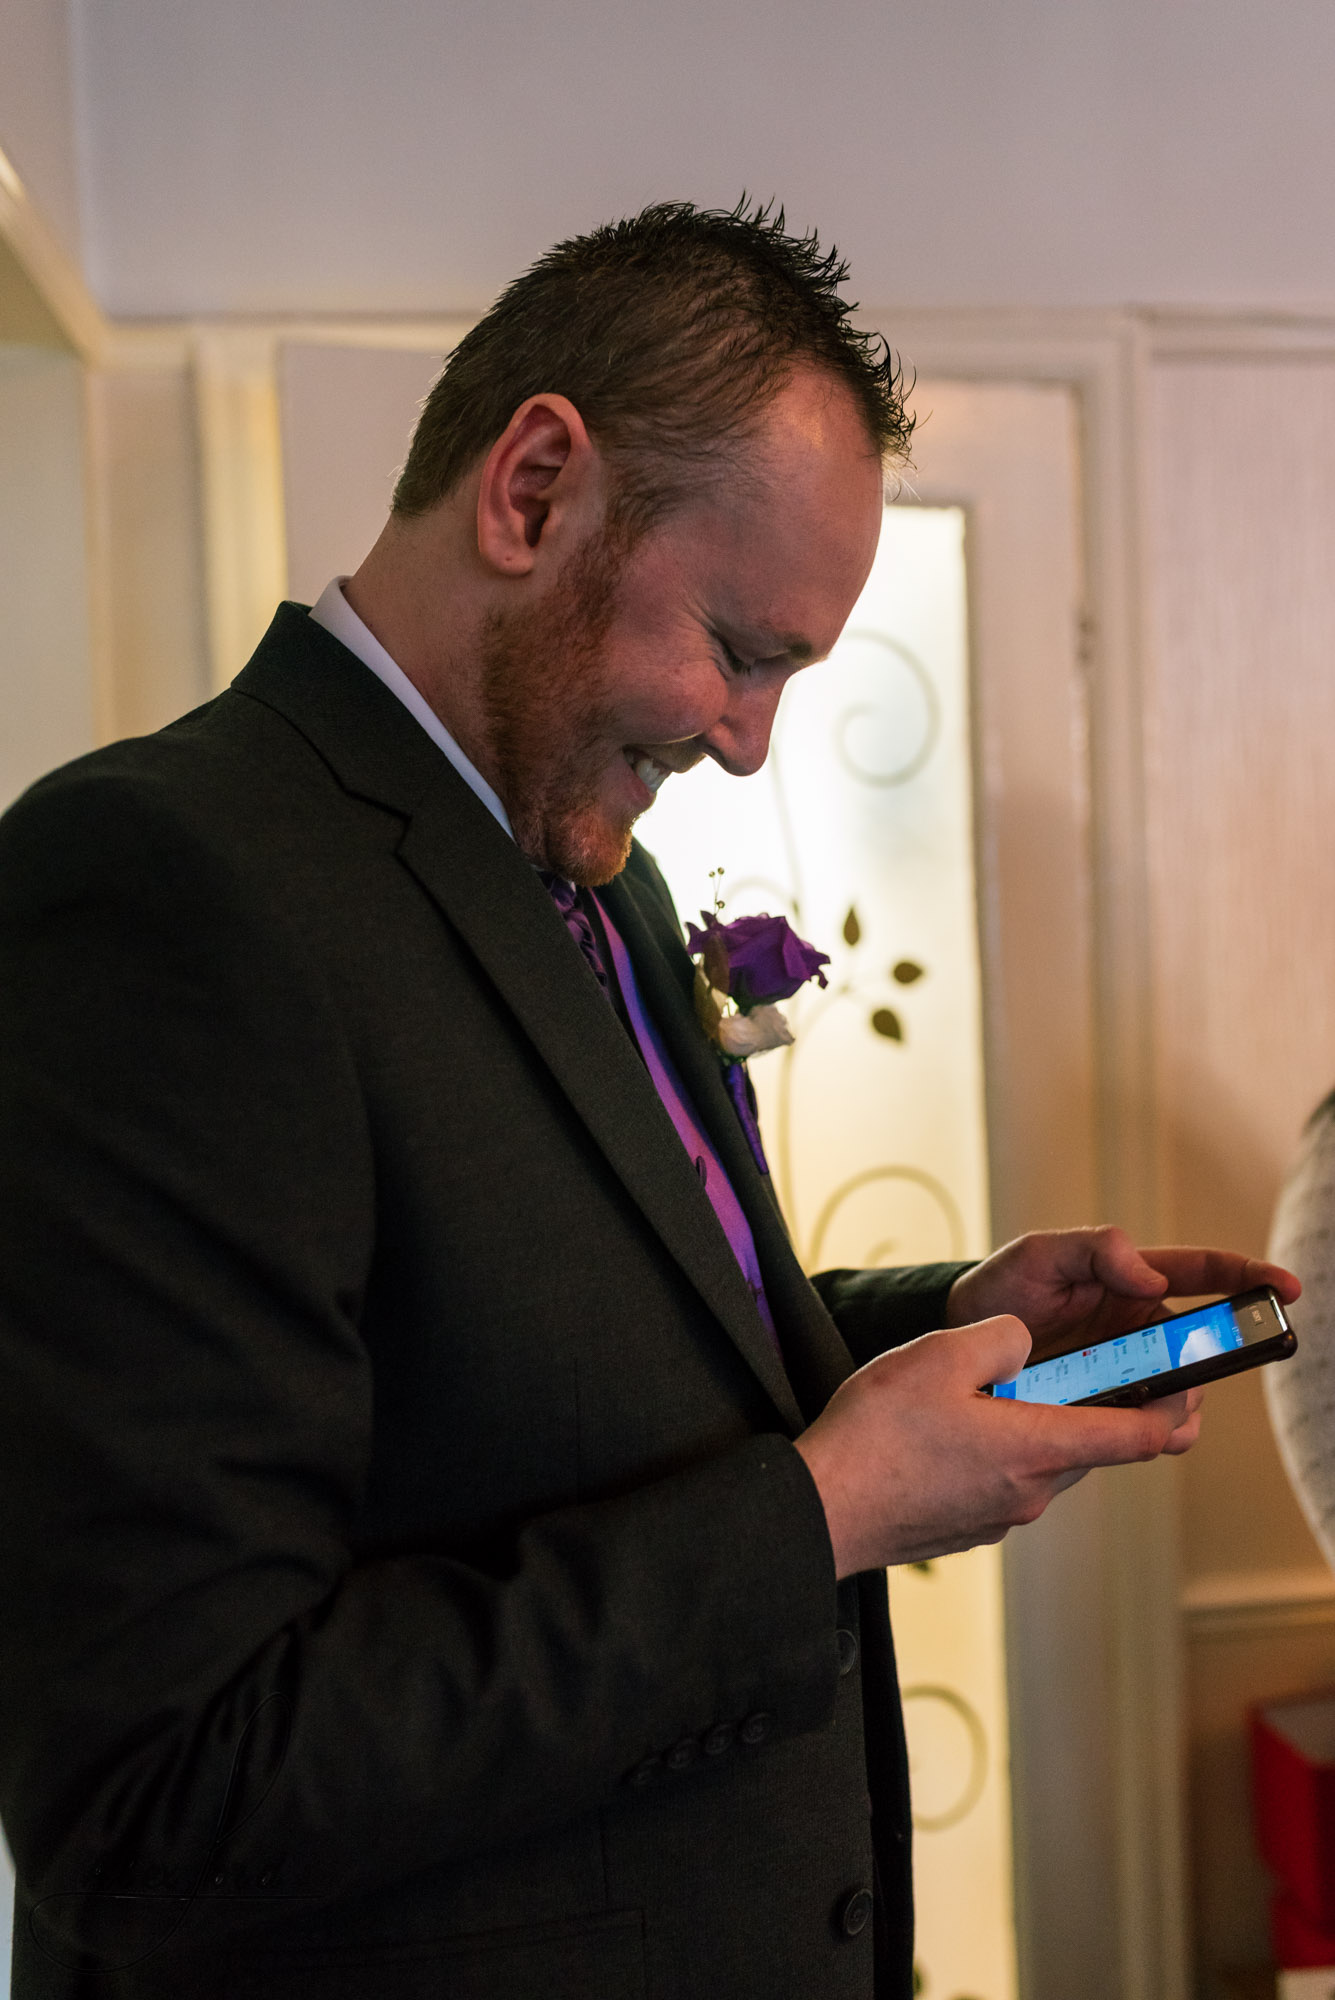 the groom checks his mobile phone before leaving for the ceremony